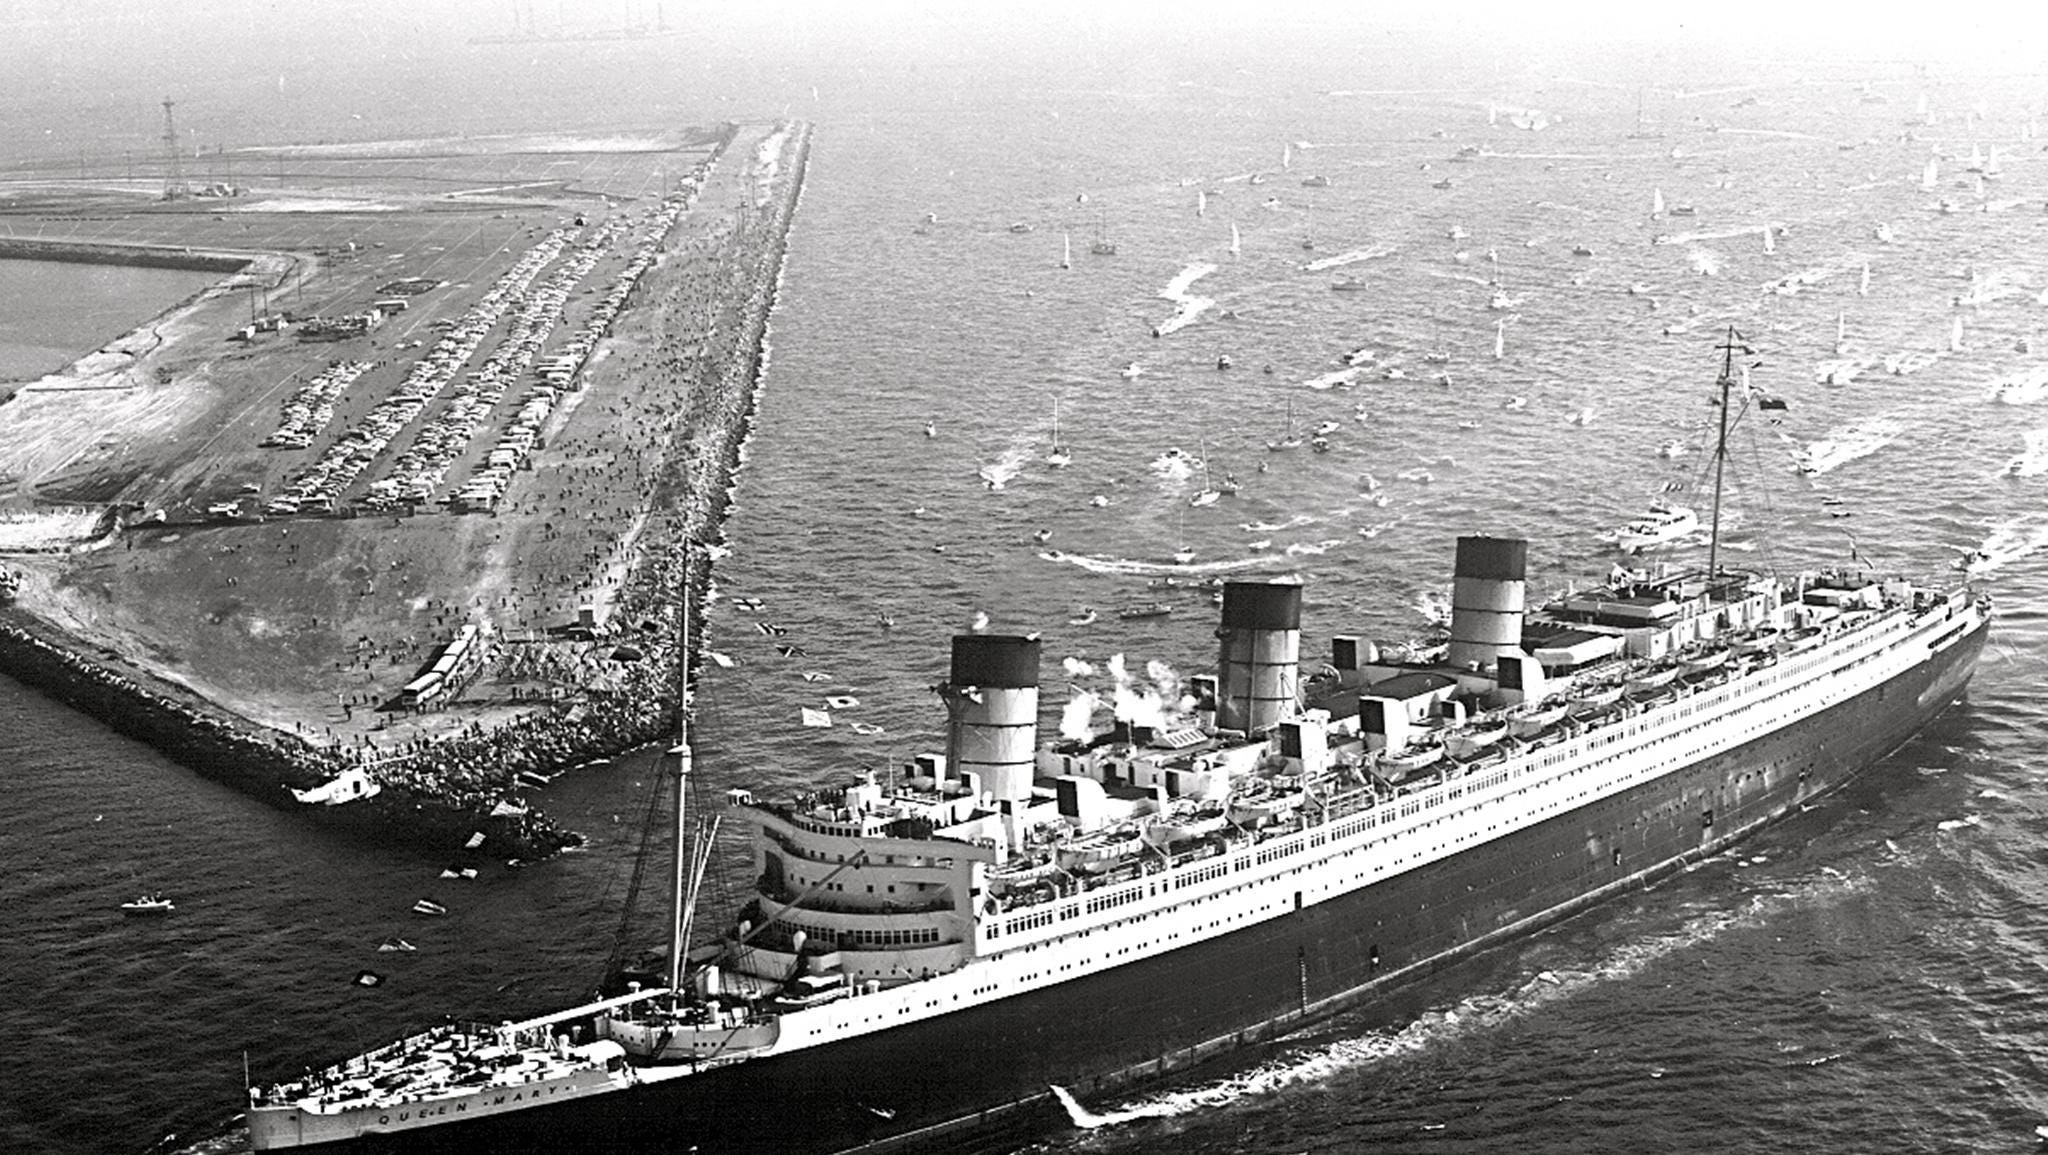 Thousands of spectators were on hand to greet the celebrated liner on a typically sunny Southern California morning.